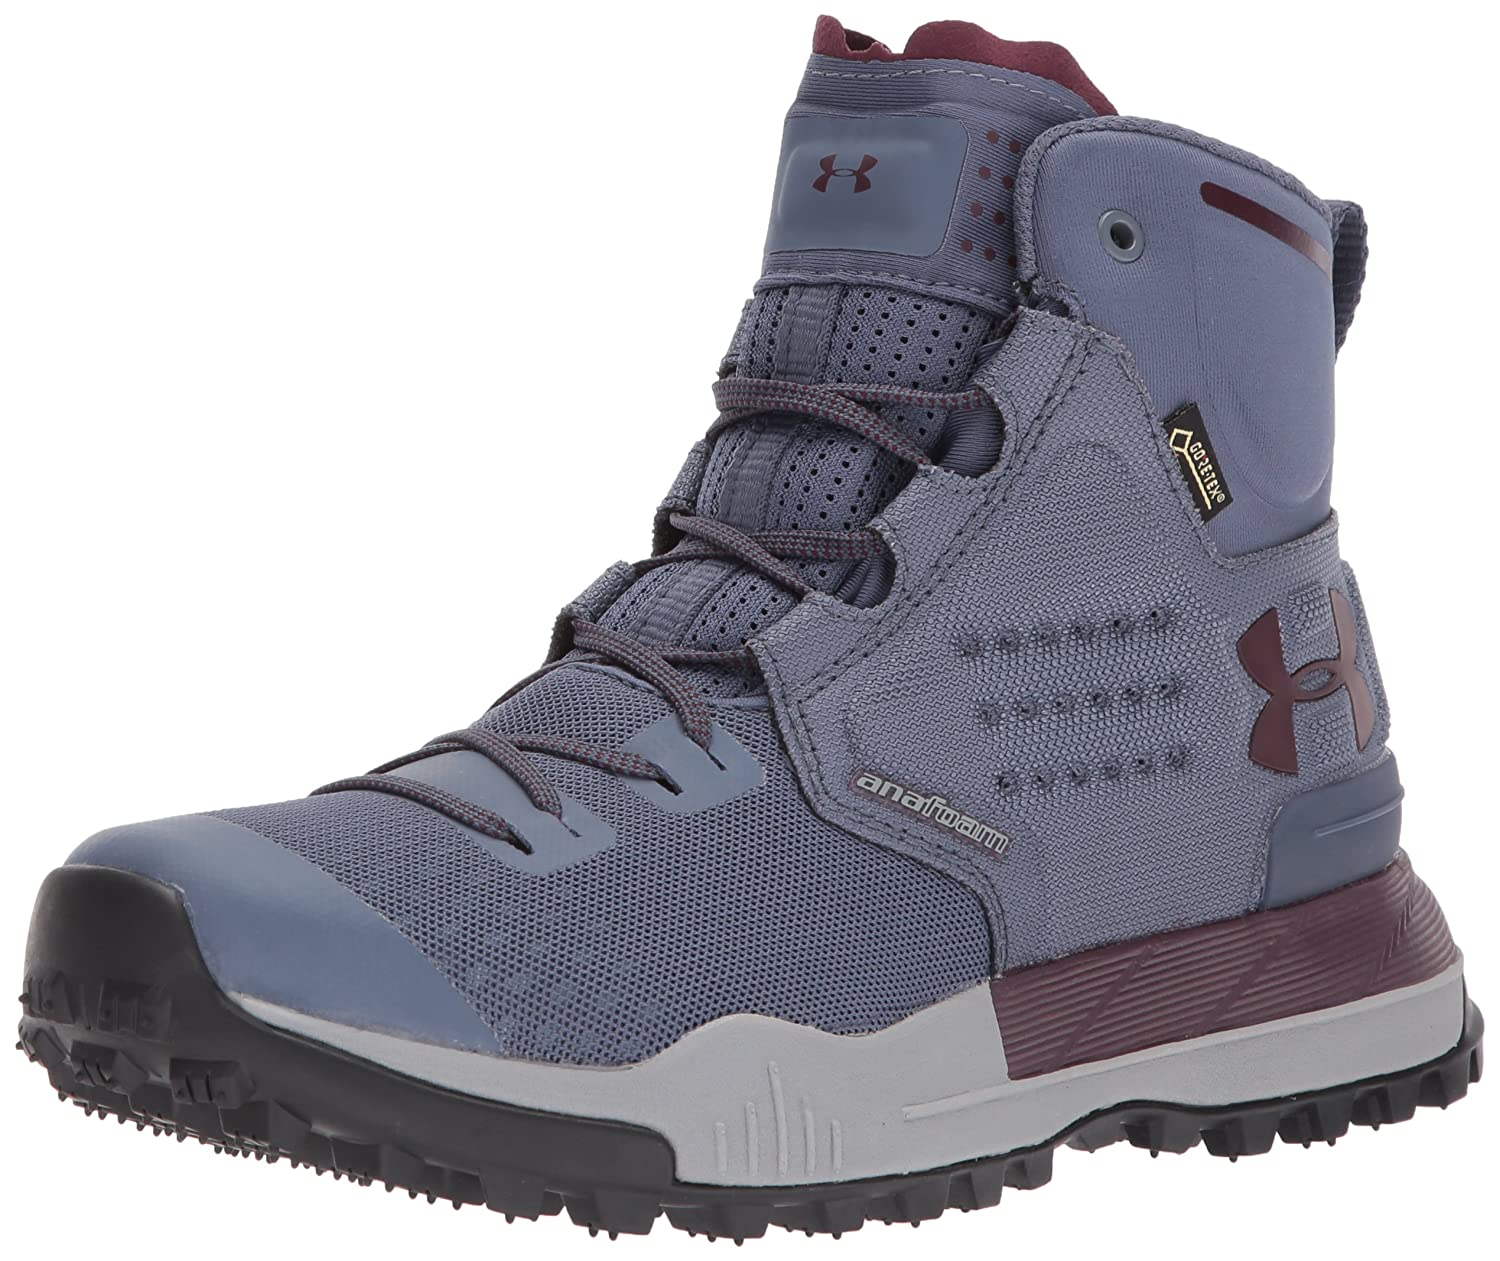 Under Armour Women's Newell Ridge Mid Gore-Tex Backpacking Boot B01MQY92CD 8 M US|Apollo Gray (962)/Steel